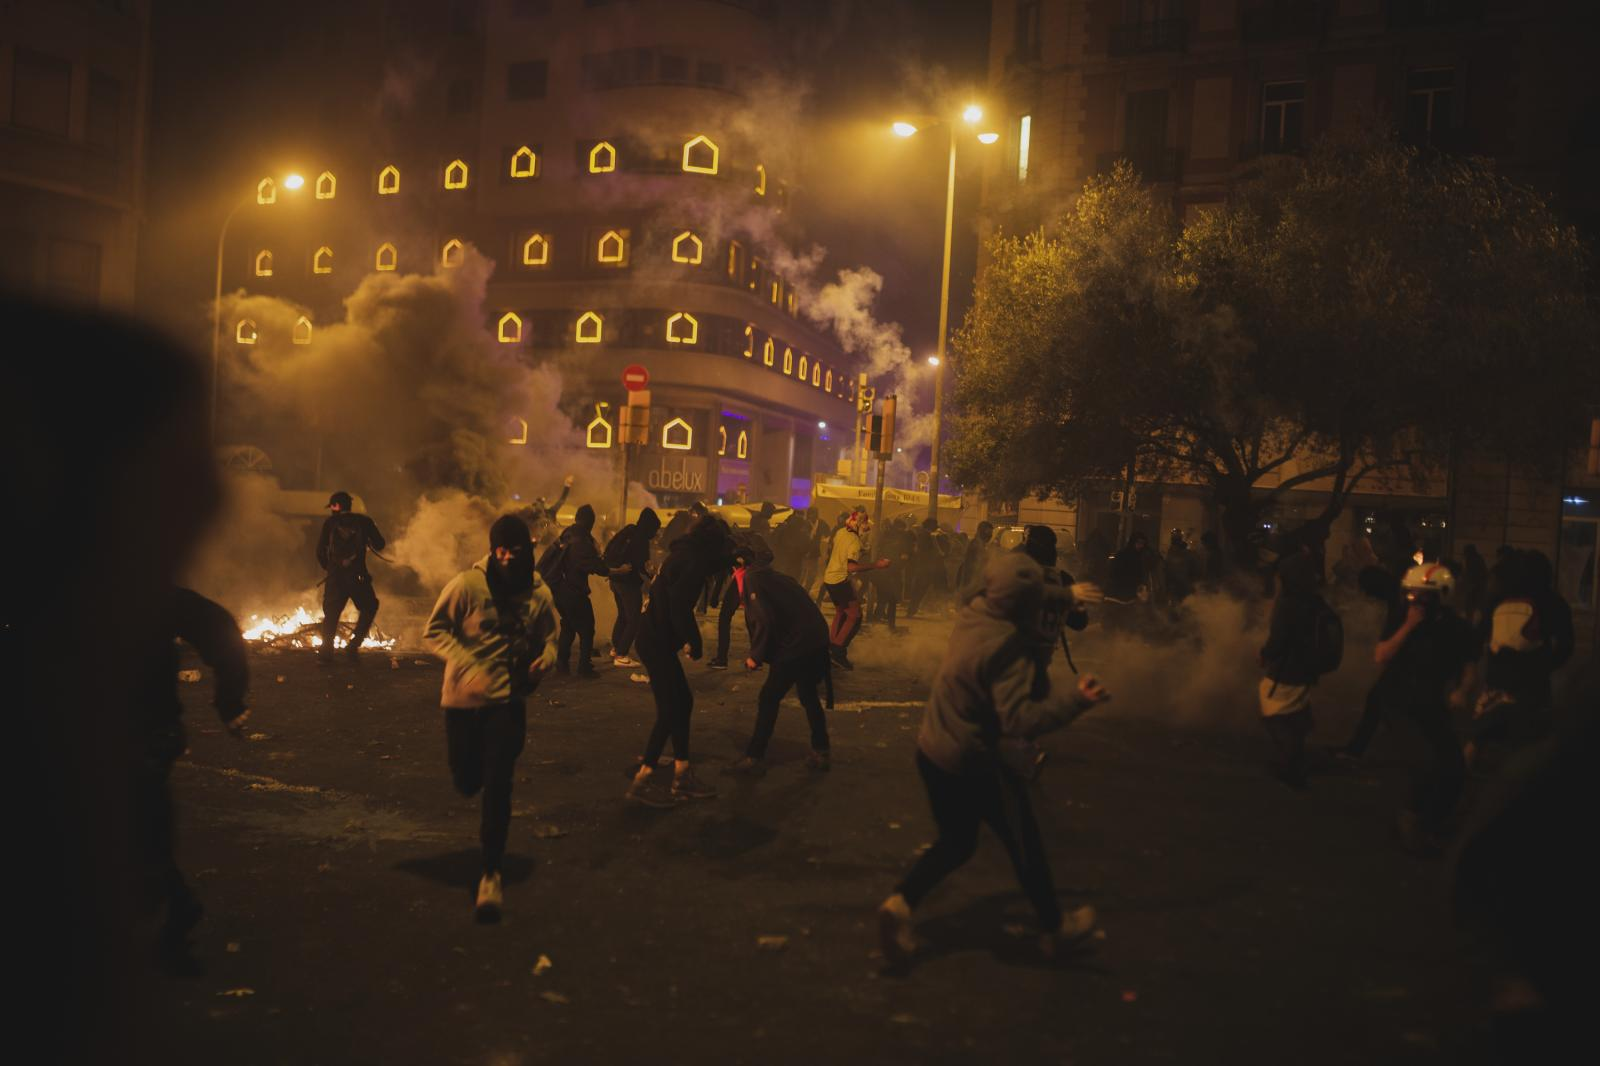 Police intervention violently disperses protesters in Plaza Urquinaona (October 18,2019. Barcelona, Spain)